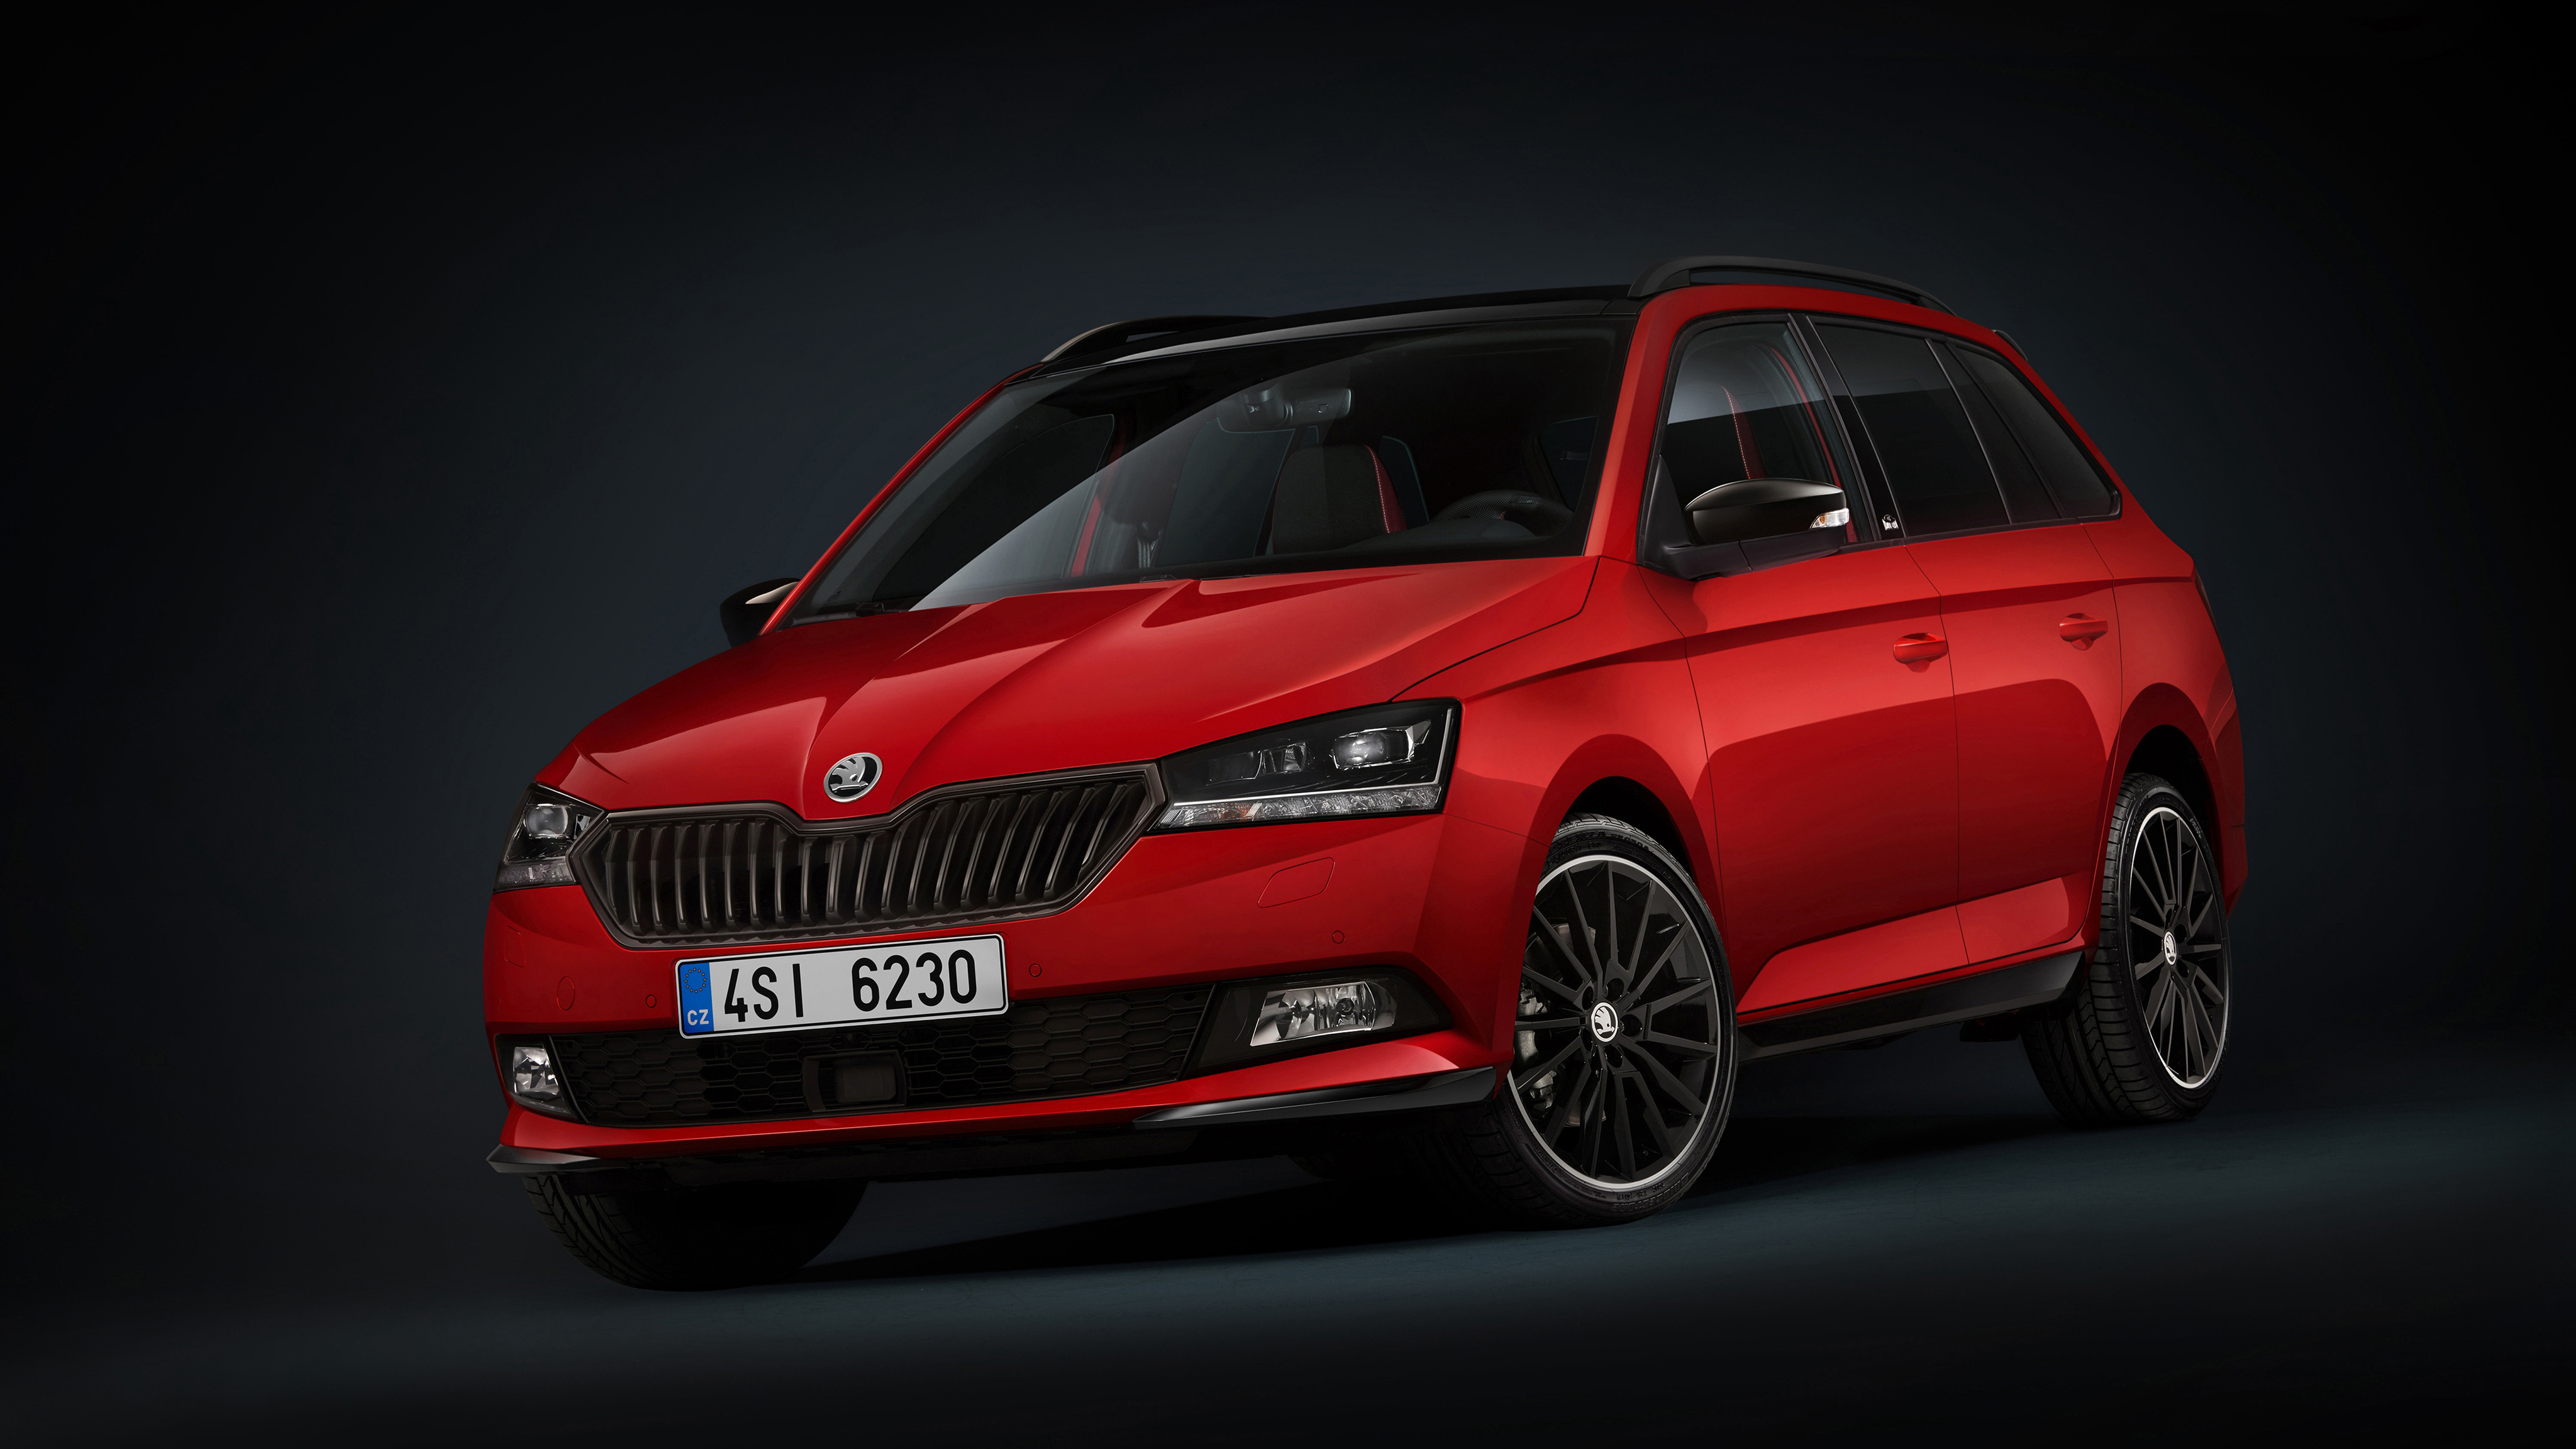 2018 skoda fabia combi monte carlo 4k wallpaper hd car. Black Bedroom Furniture Sets. Home Design Ideas